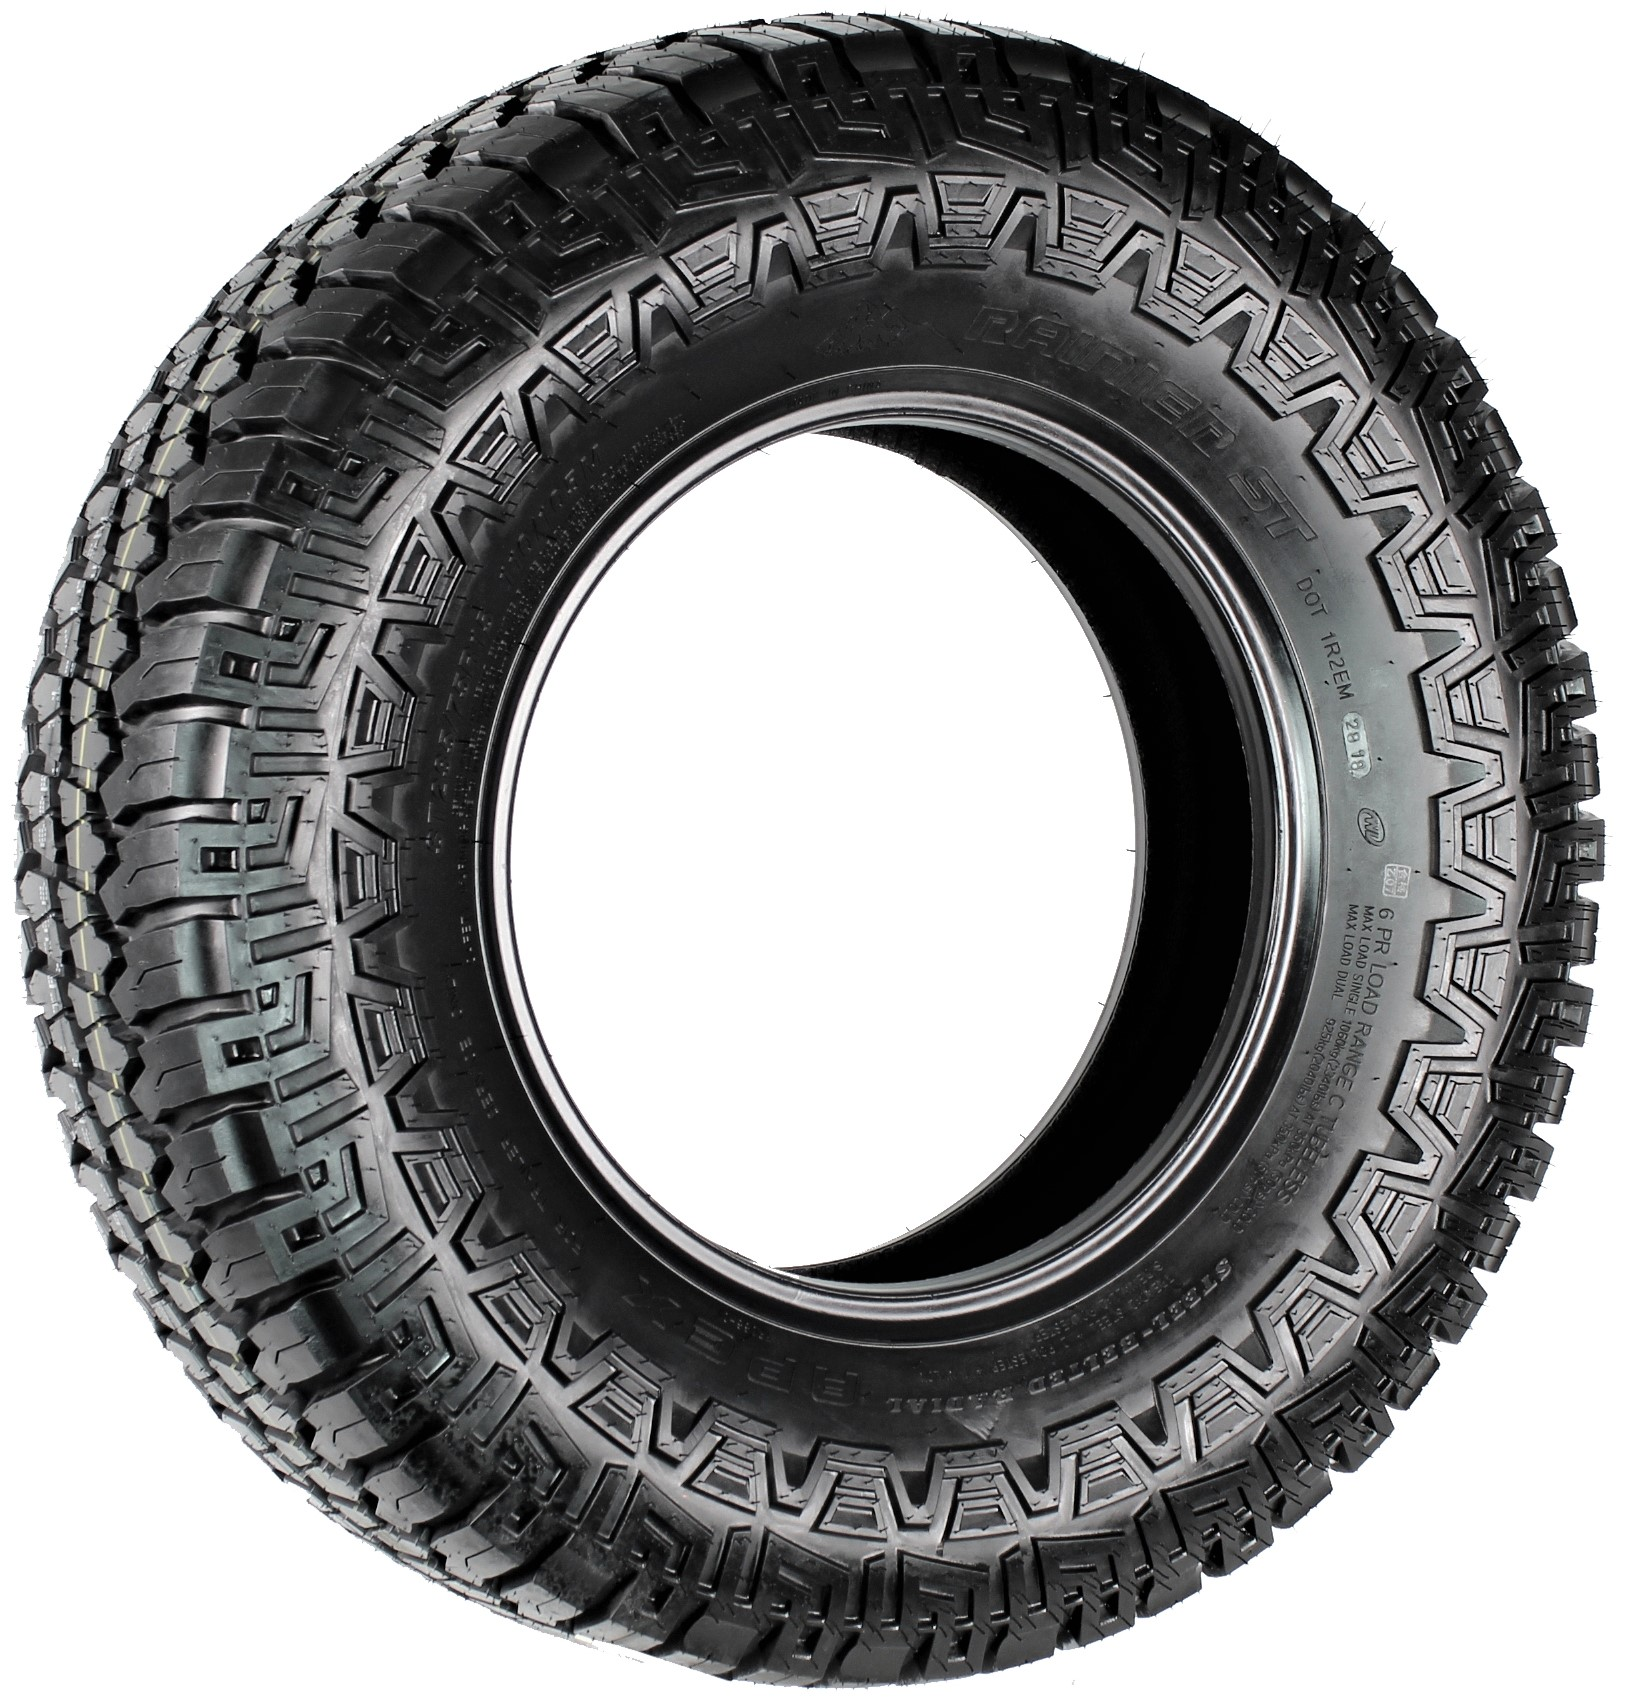 Rainier Apex ST235/75R15 LRC Off-Road Radial Trailer Tire Image